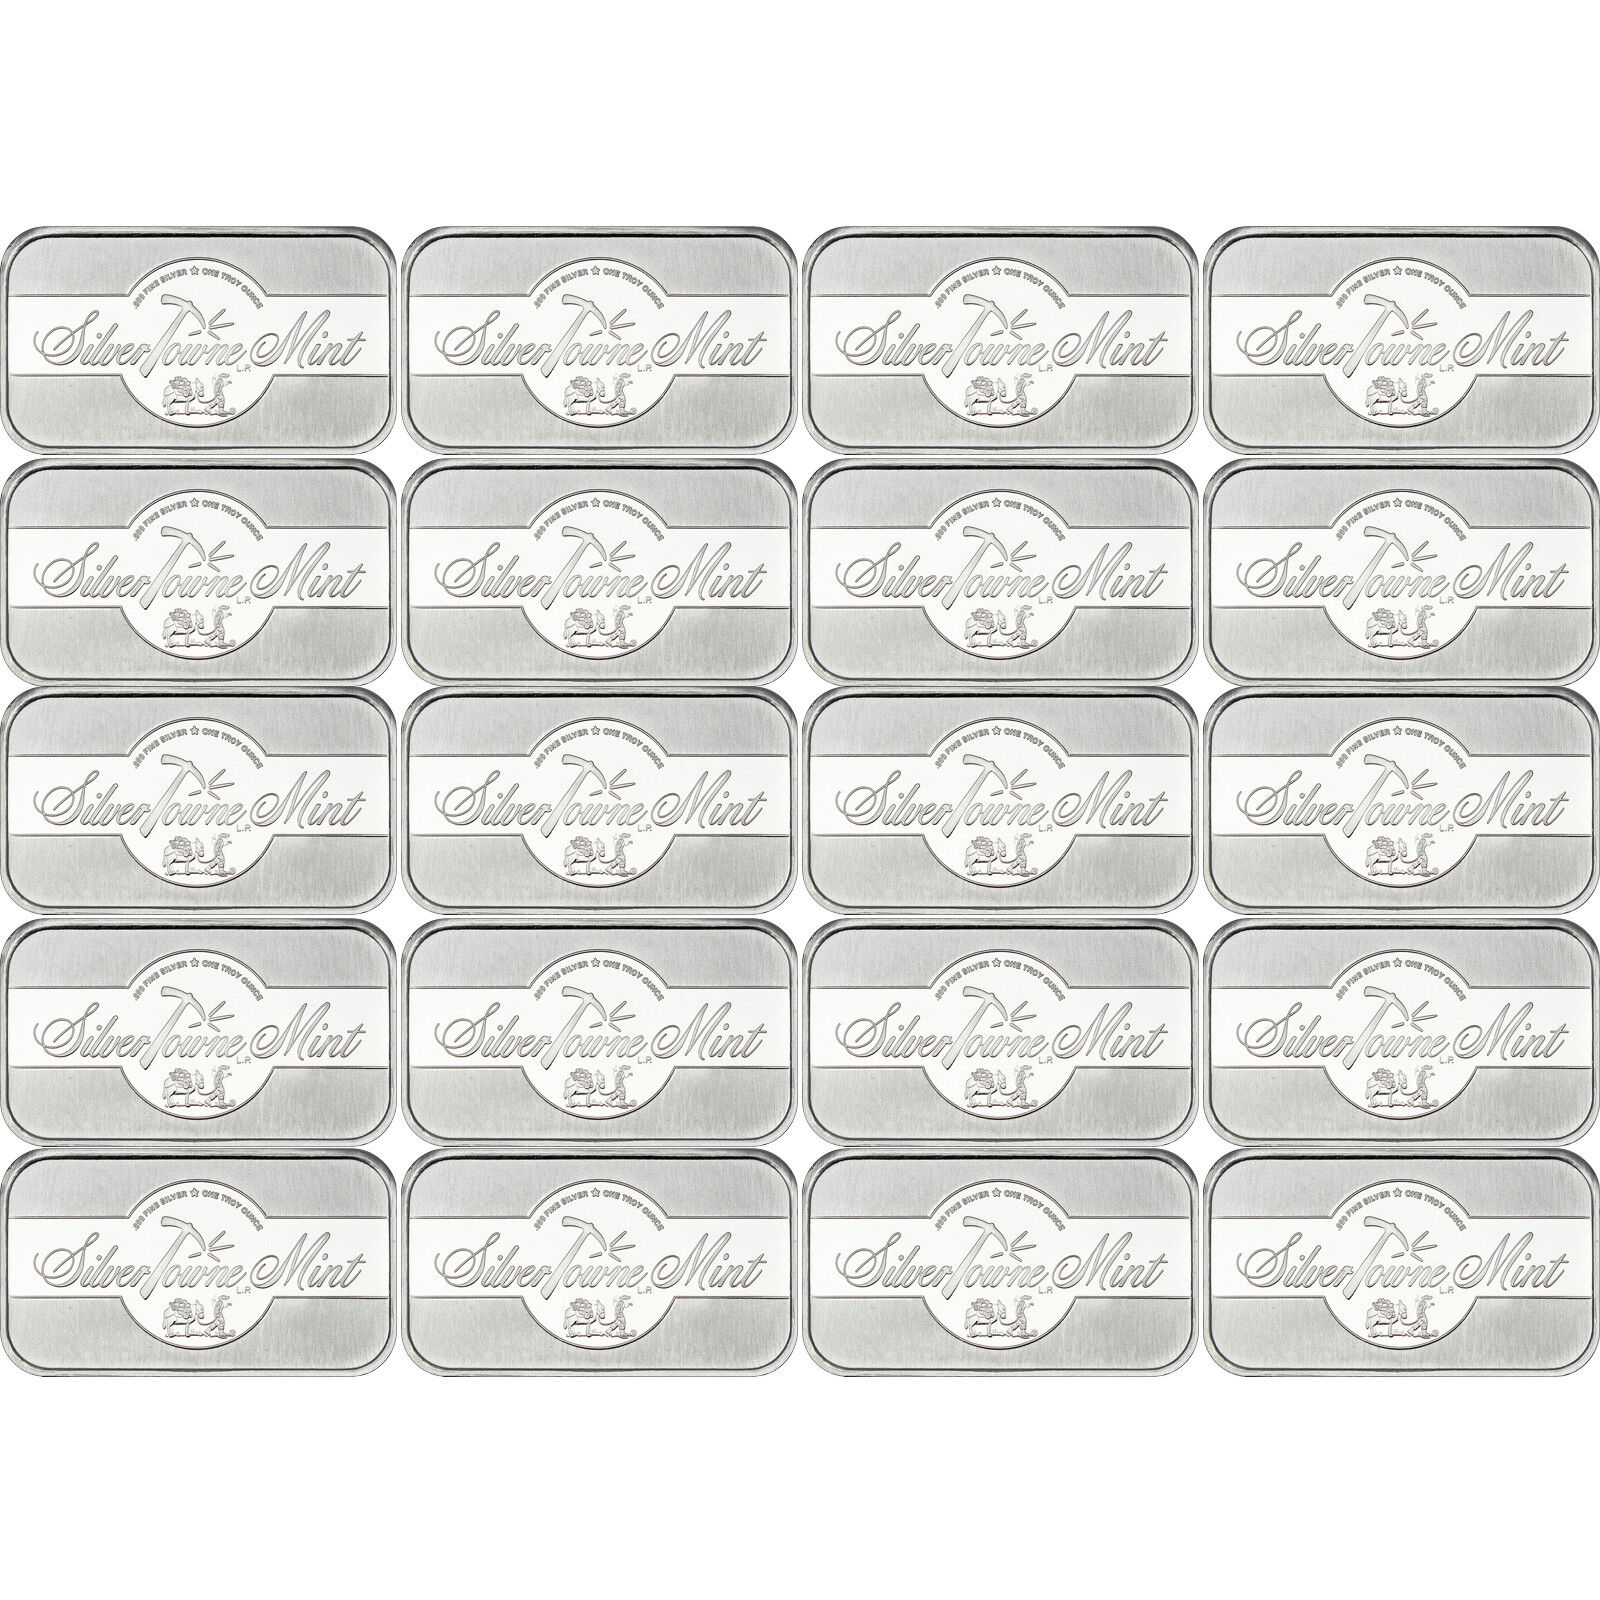 SilverTowne Mint Signature 1 oz .999 Fine Silver Bar LOT of 20